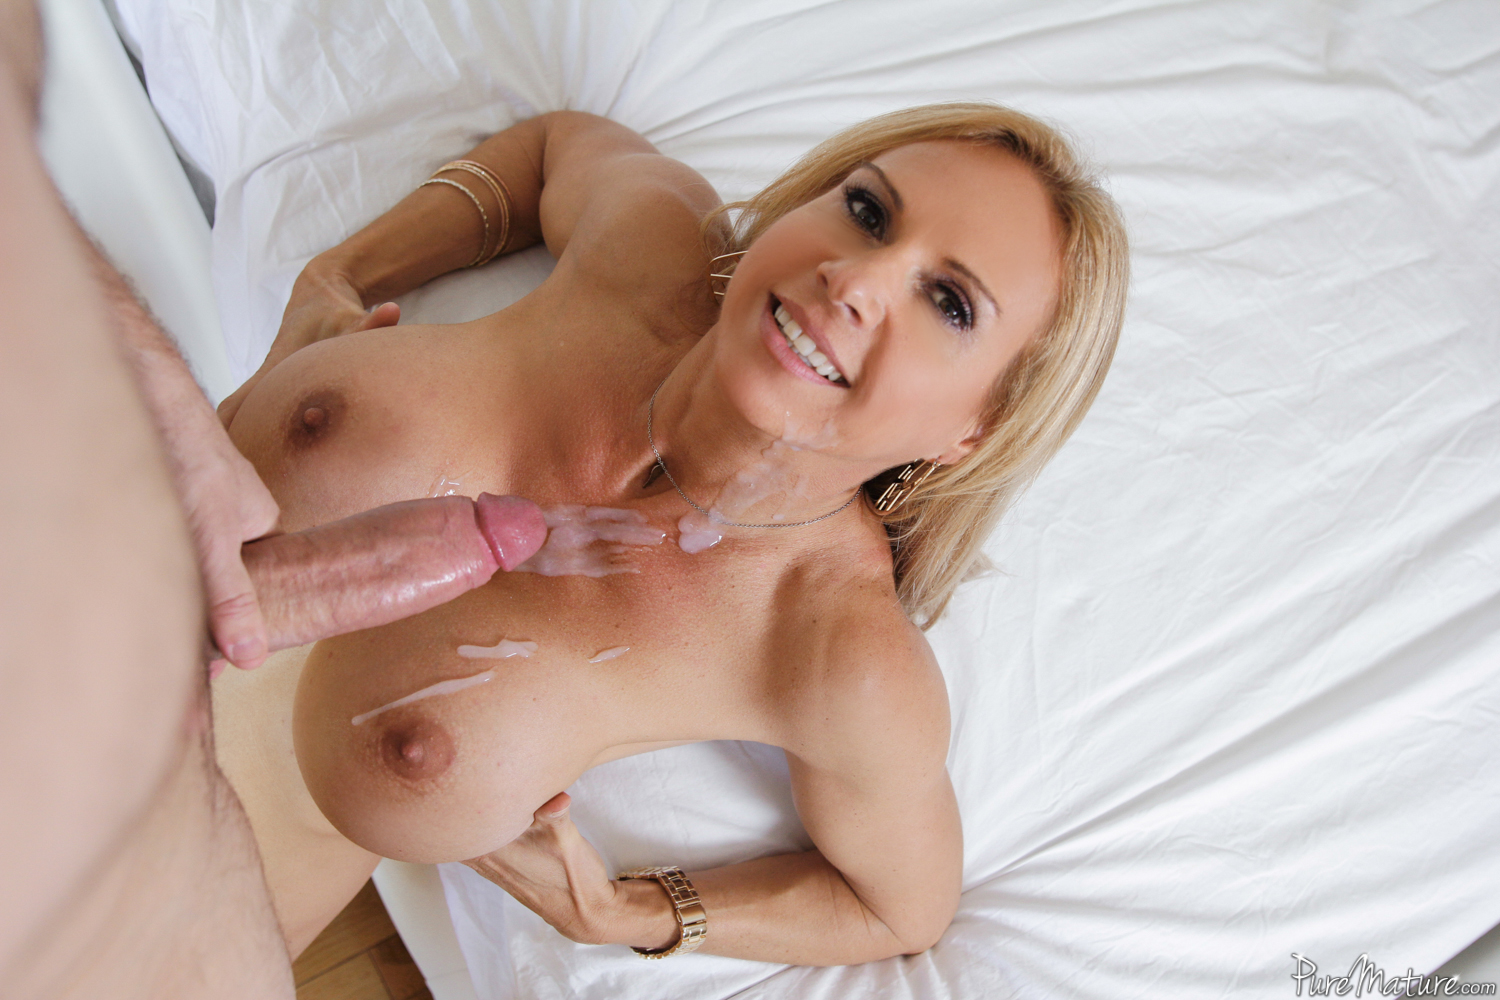 Vanilla loves to suck cock it gets her vagina wet 5